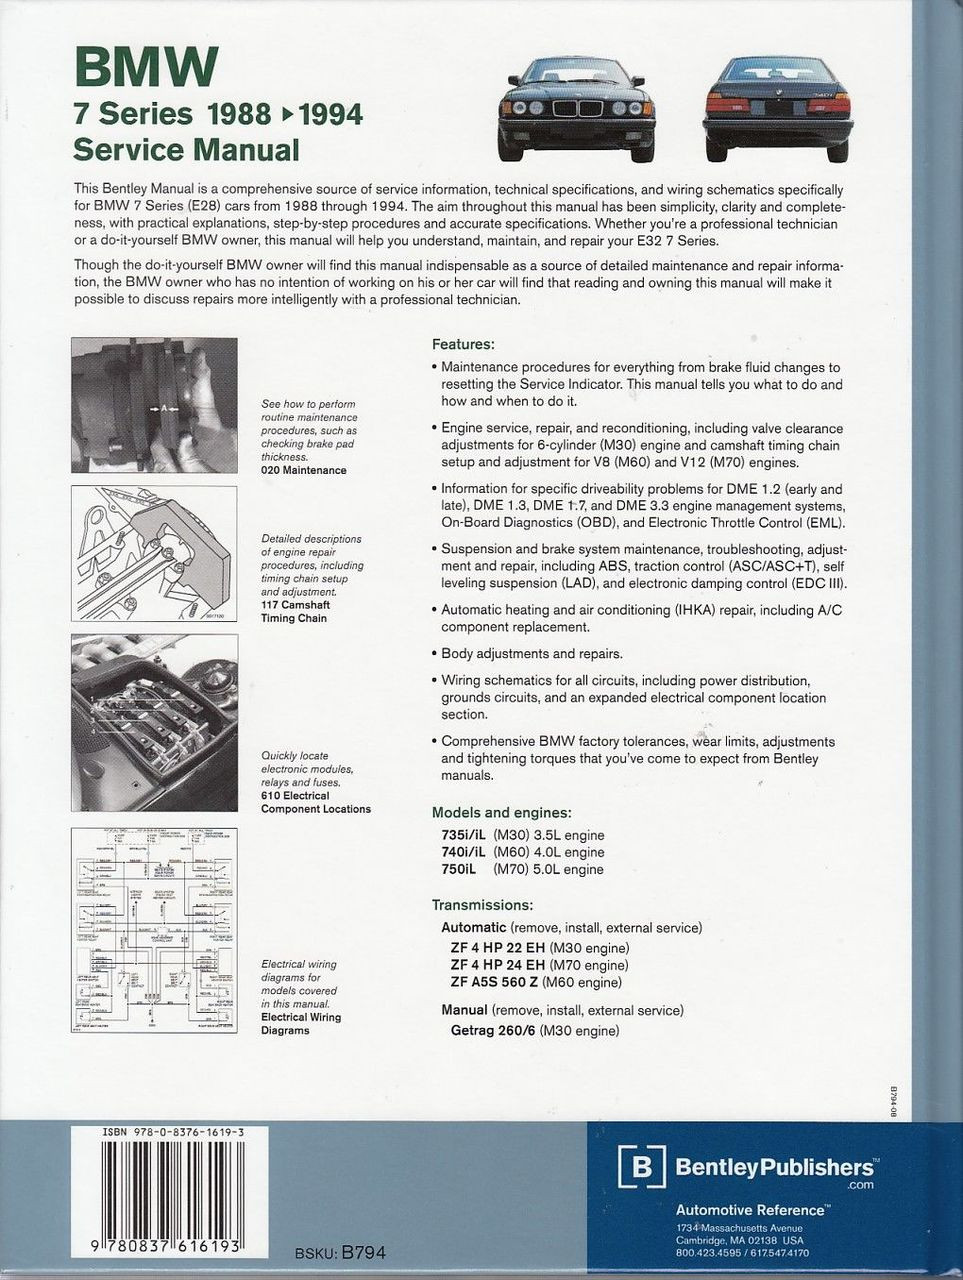 Wiring Diagram Besides Ford Truck 3 Speed Manual Transmission Linkage